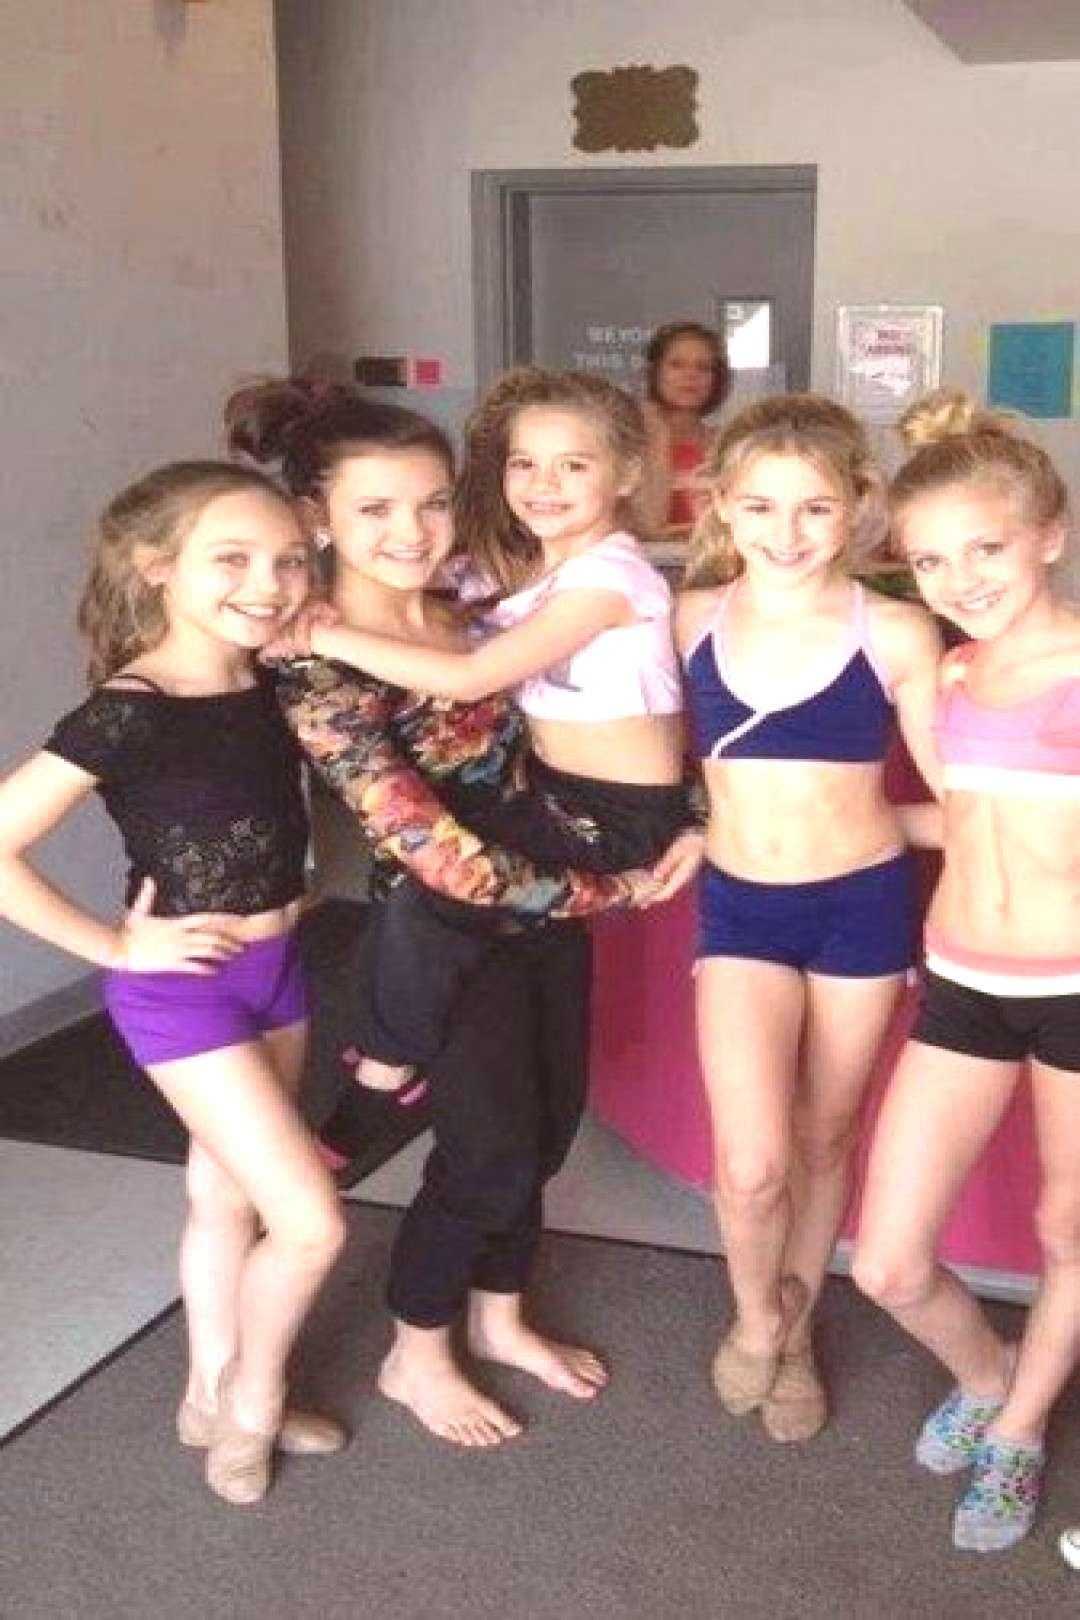 Maddie, Brooke, Mackenzie, Chloe, and Paige. Then theres Kelly in the background